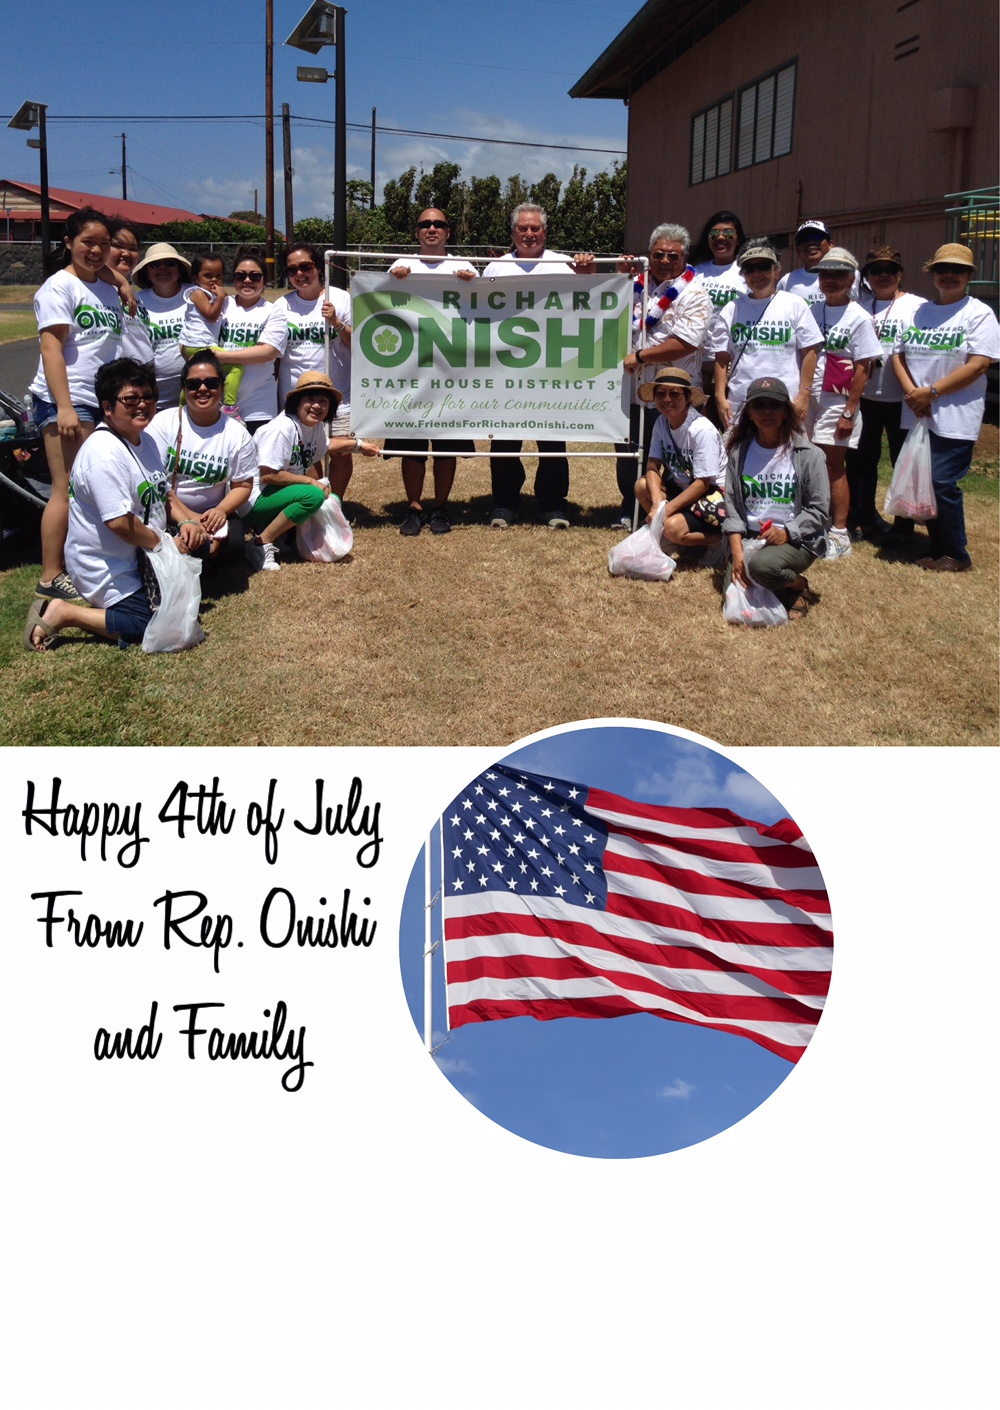 Happy 4th of July from Rep. Richard Onishi